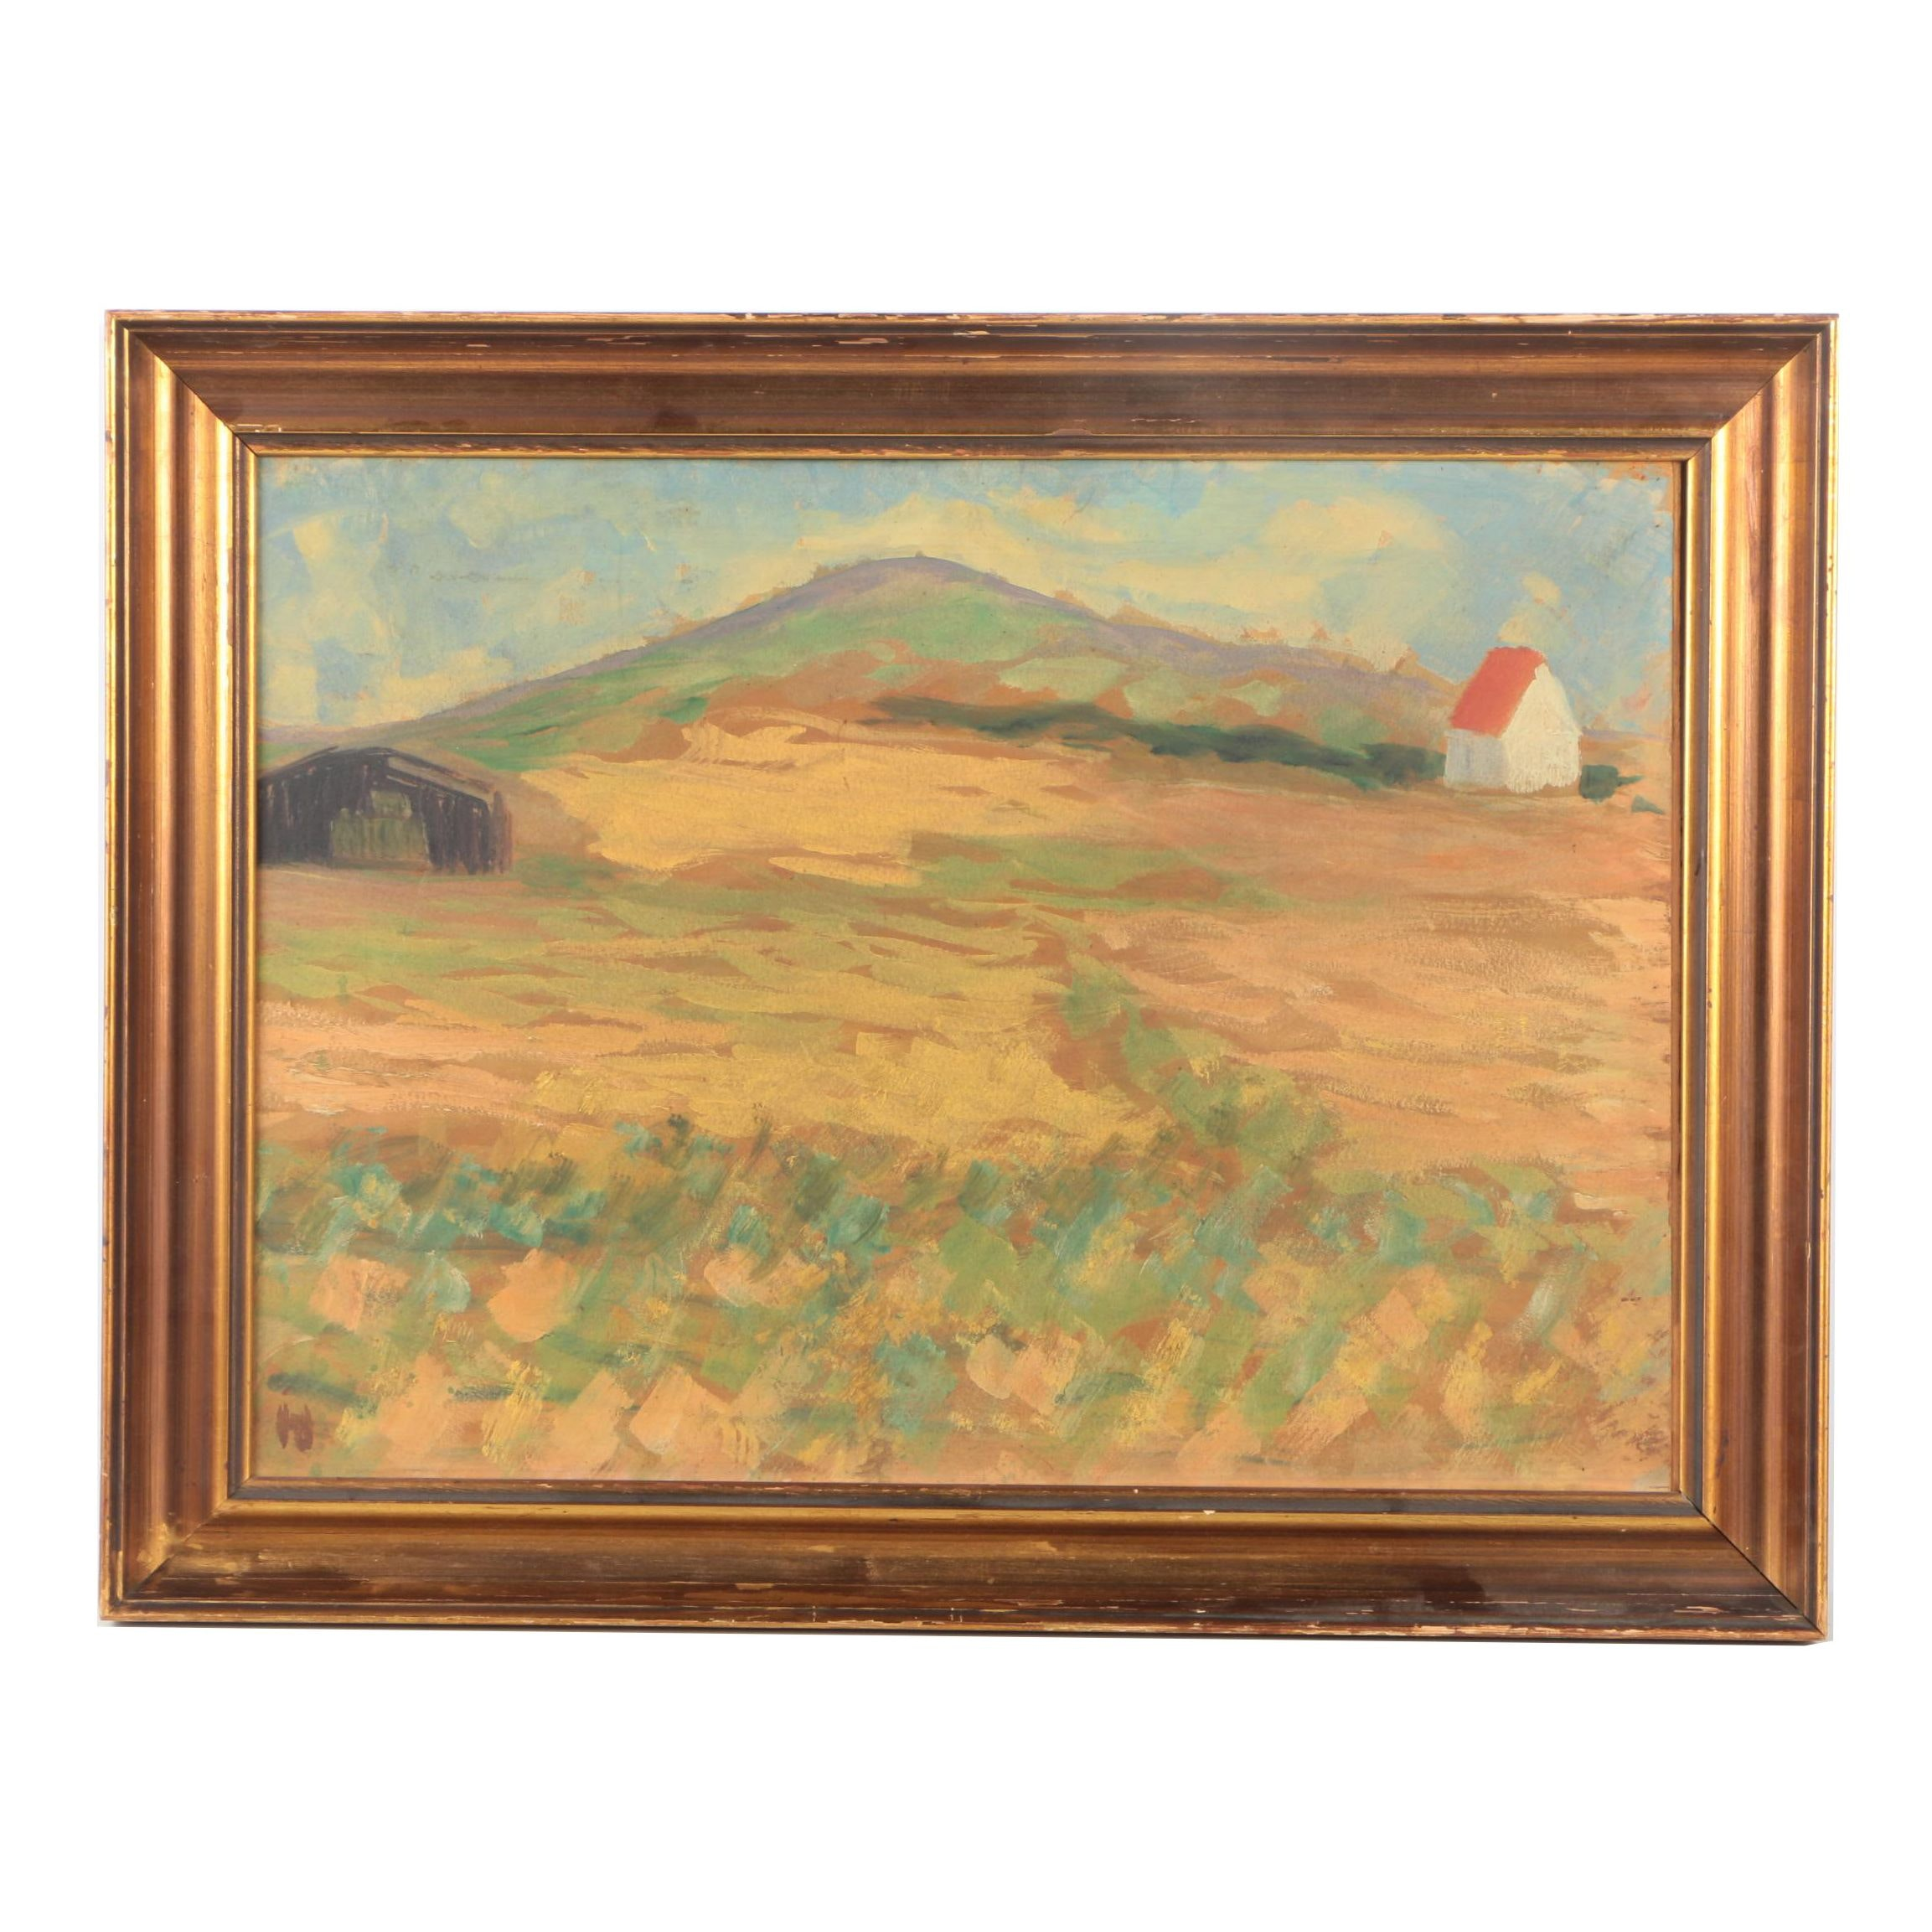 Framed Oil Painting on Panel of a Landscape